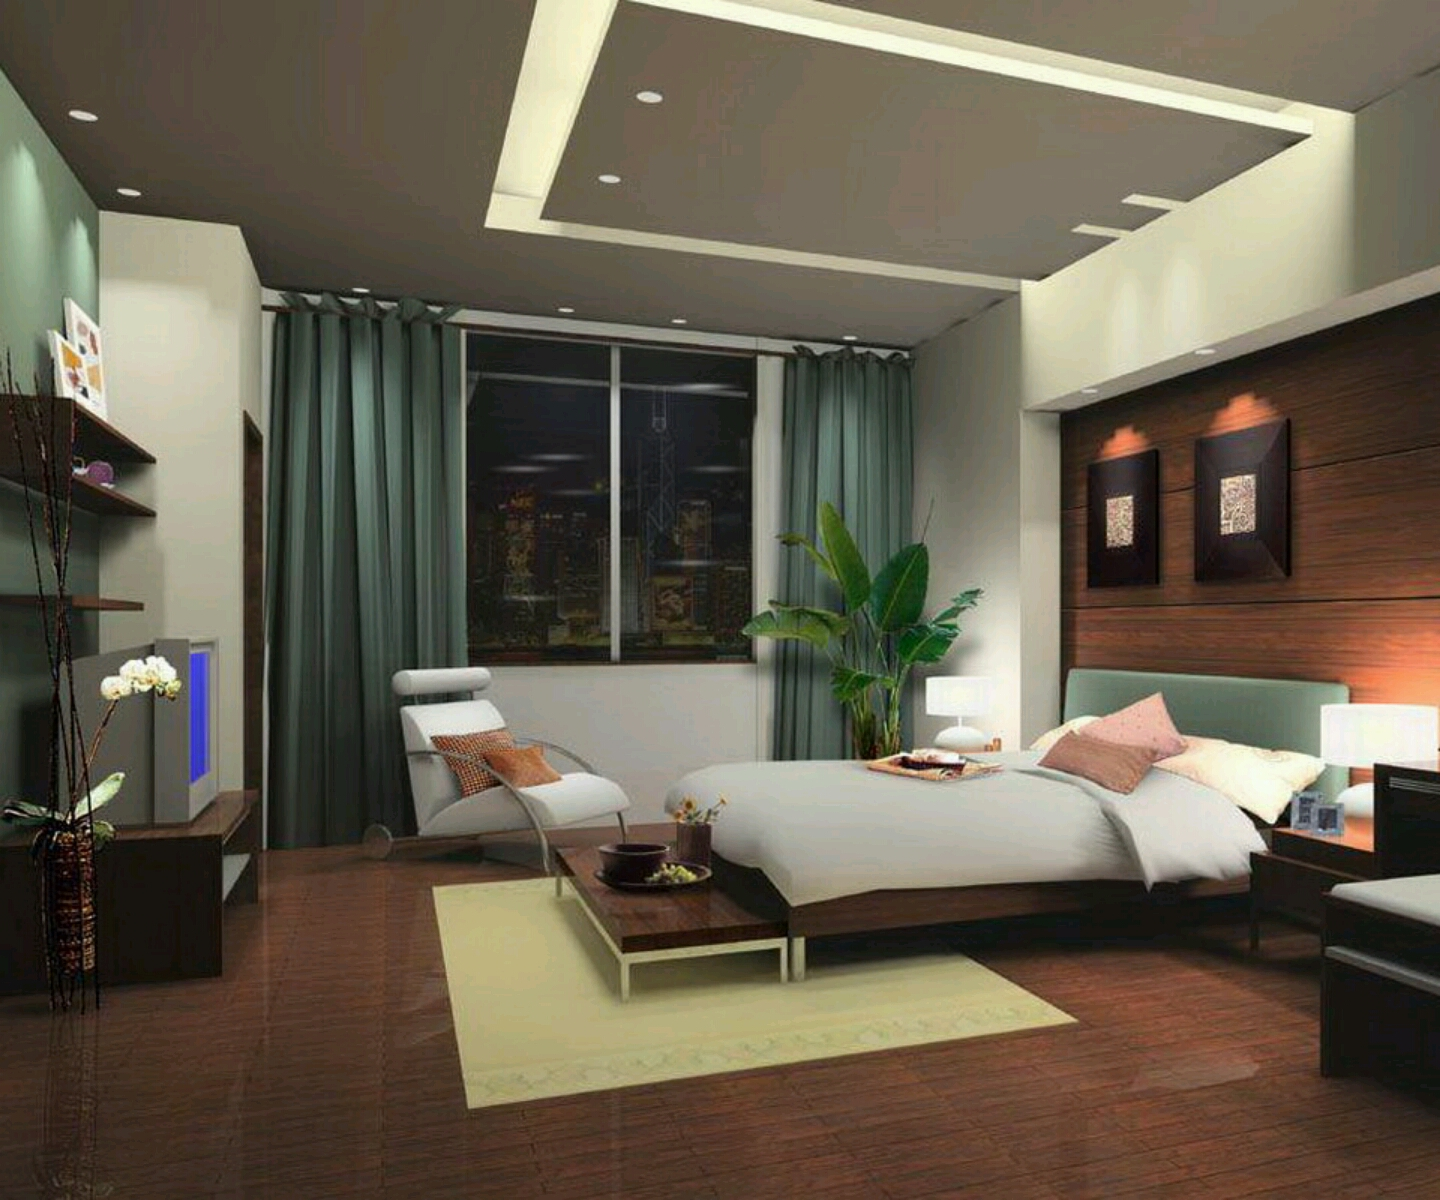 New home designs latest modern bedrooms designs best ideas Latest design for master bedroom